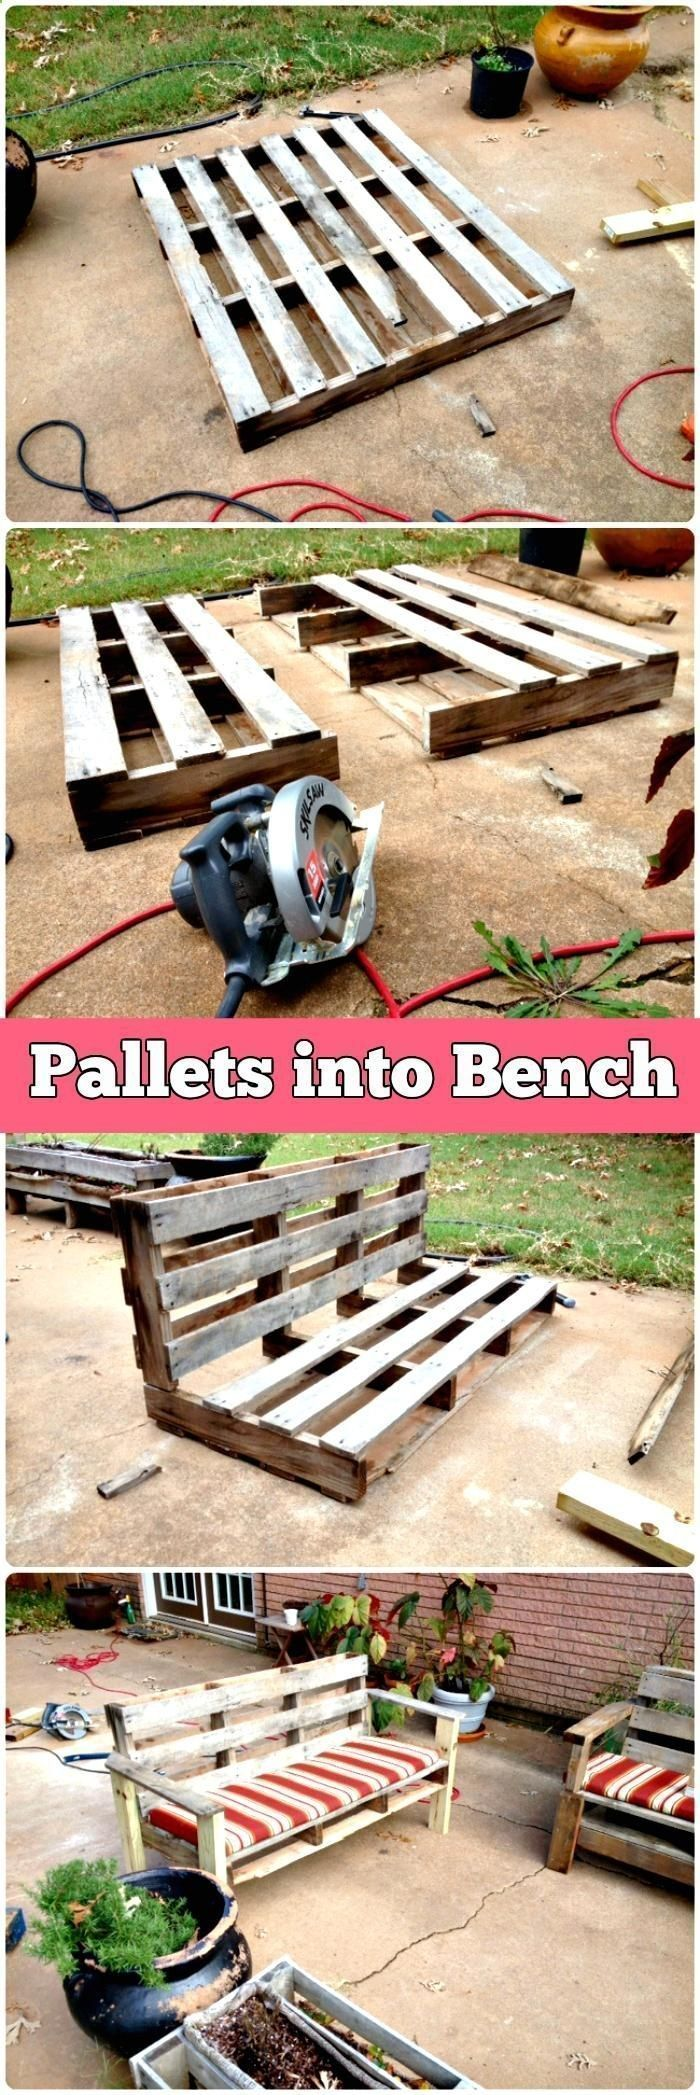 5 Easy Step DIY Transformation – Pallet into Outdoor Patio Bench - 150 Best DIY Pallet Projects and Pallet Furniture Crafts - Page 30 of 75 - DIY  Crafts #palletfurniturebench #palletfurniturepatio #palletoutdoorfurniture